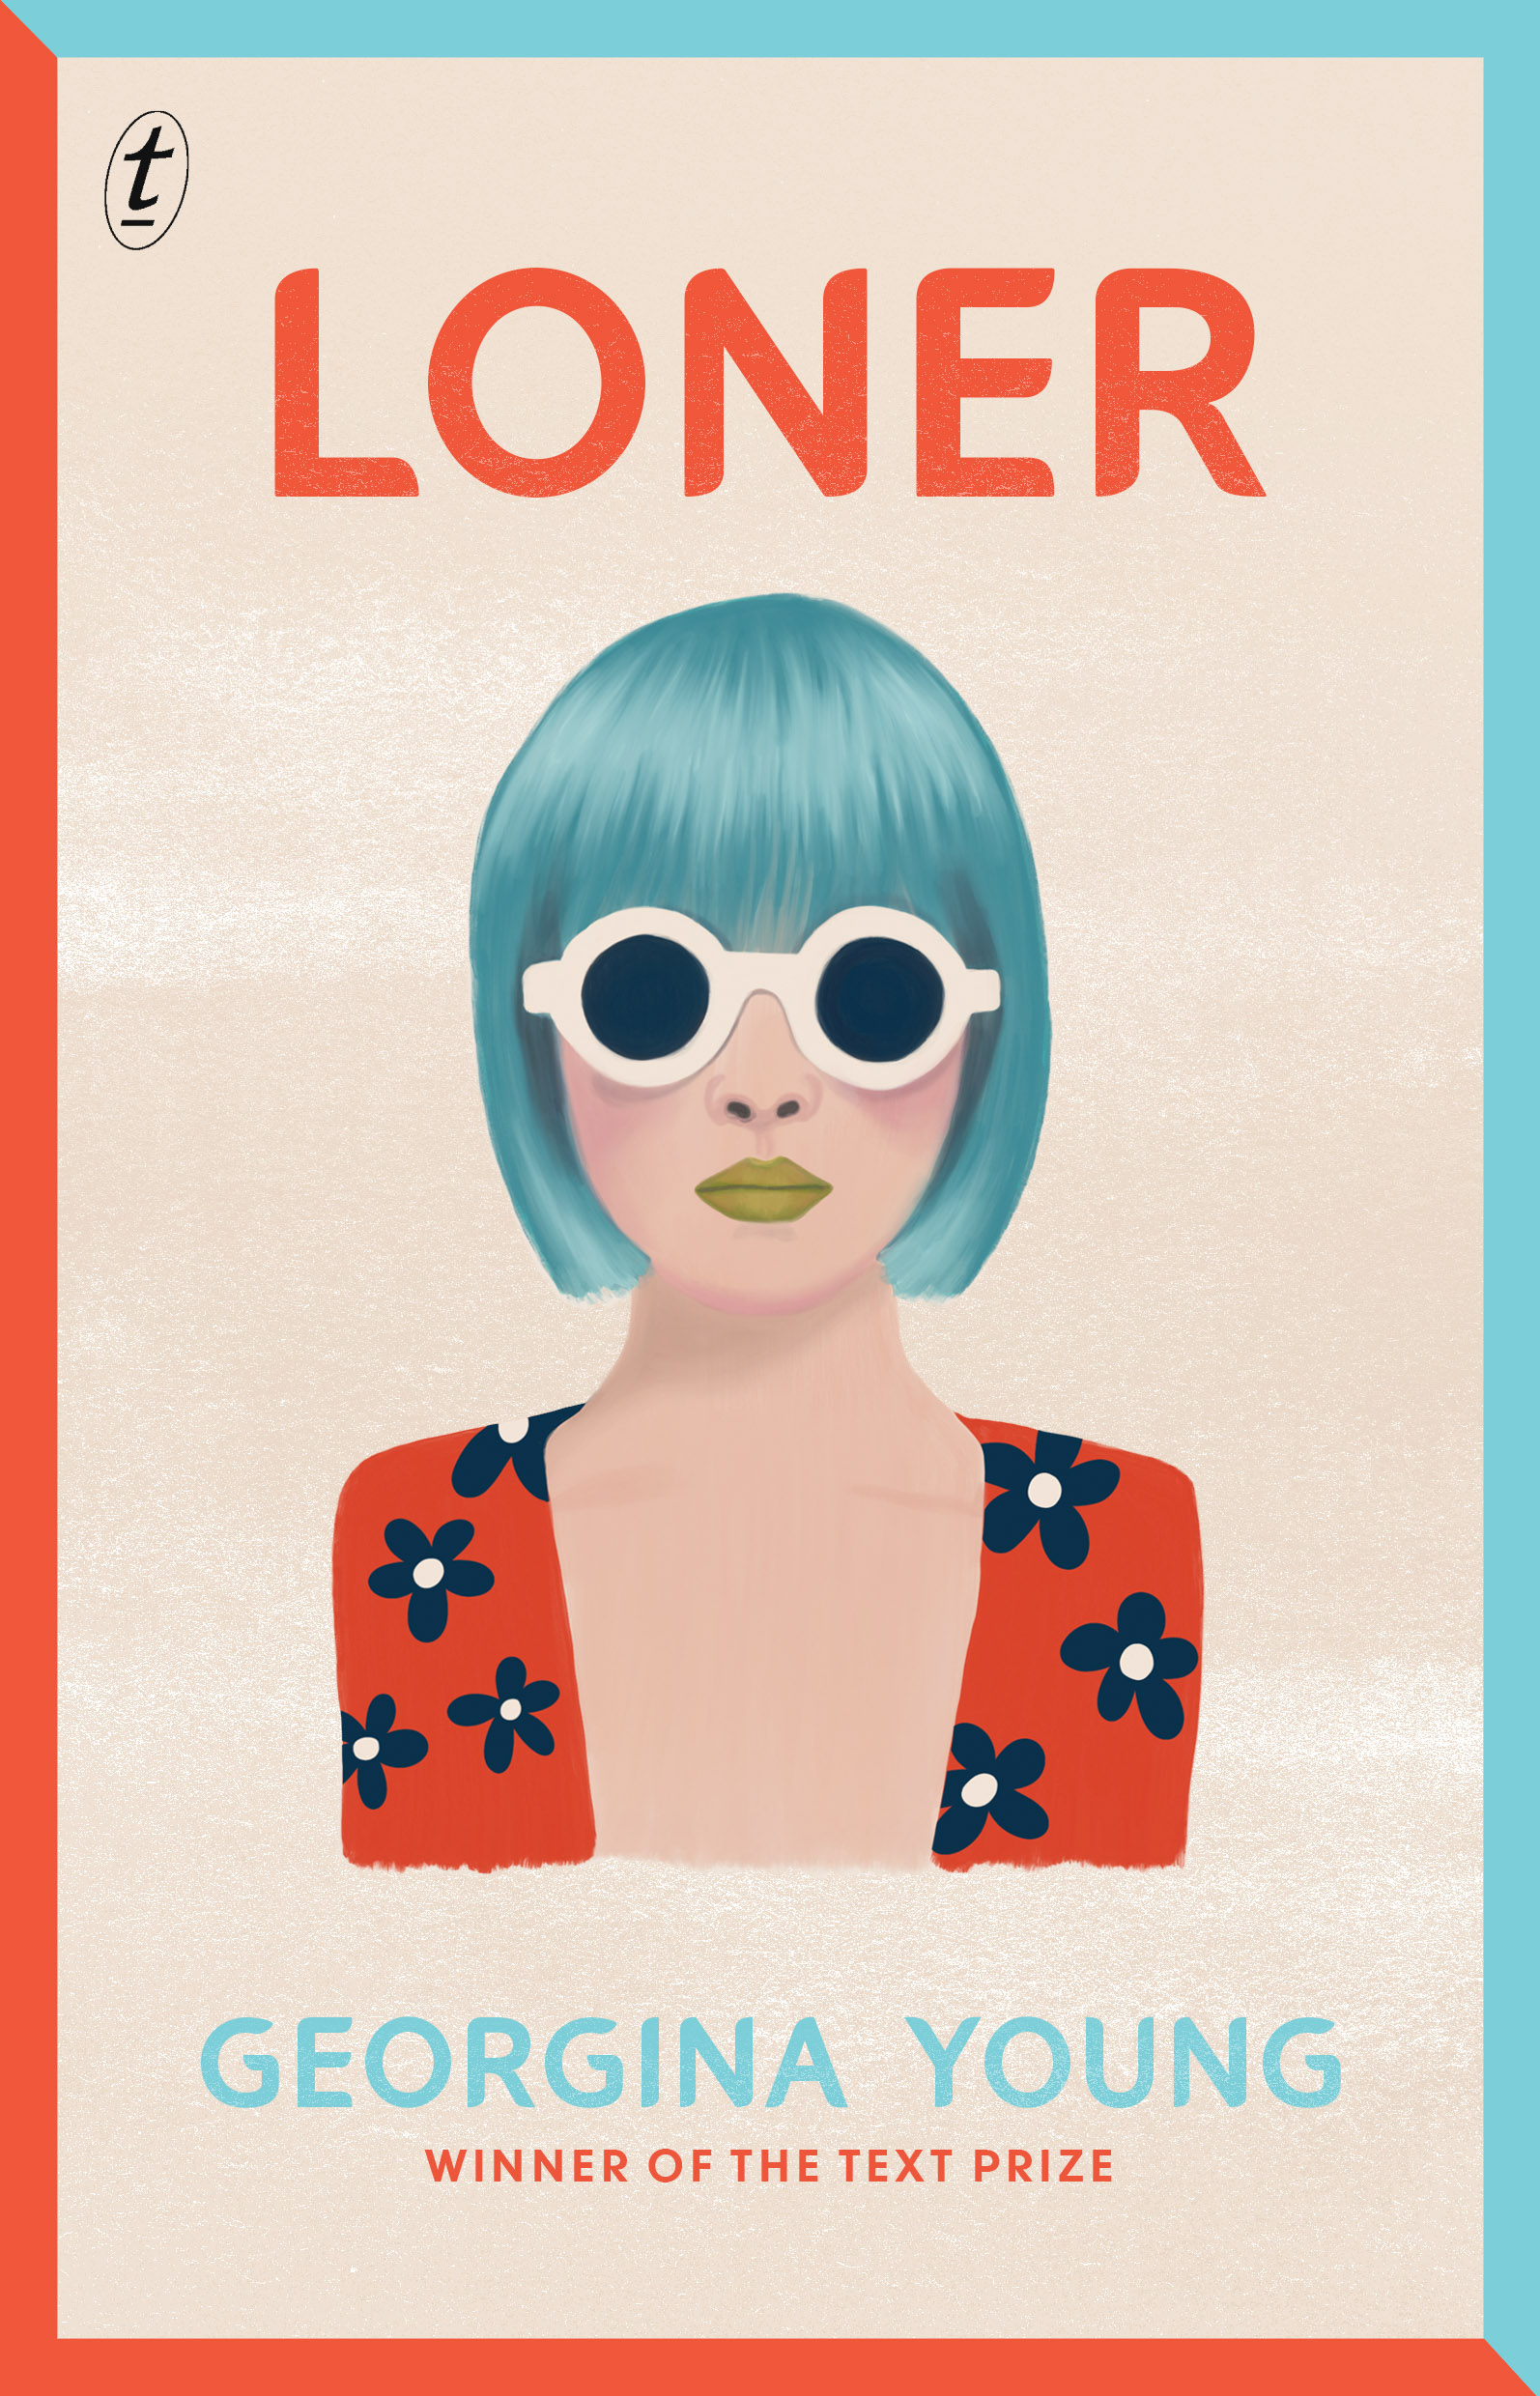 Cover image of the novel 'Loner', showing an illustration of a young person with short  blue hair and sunglasses